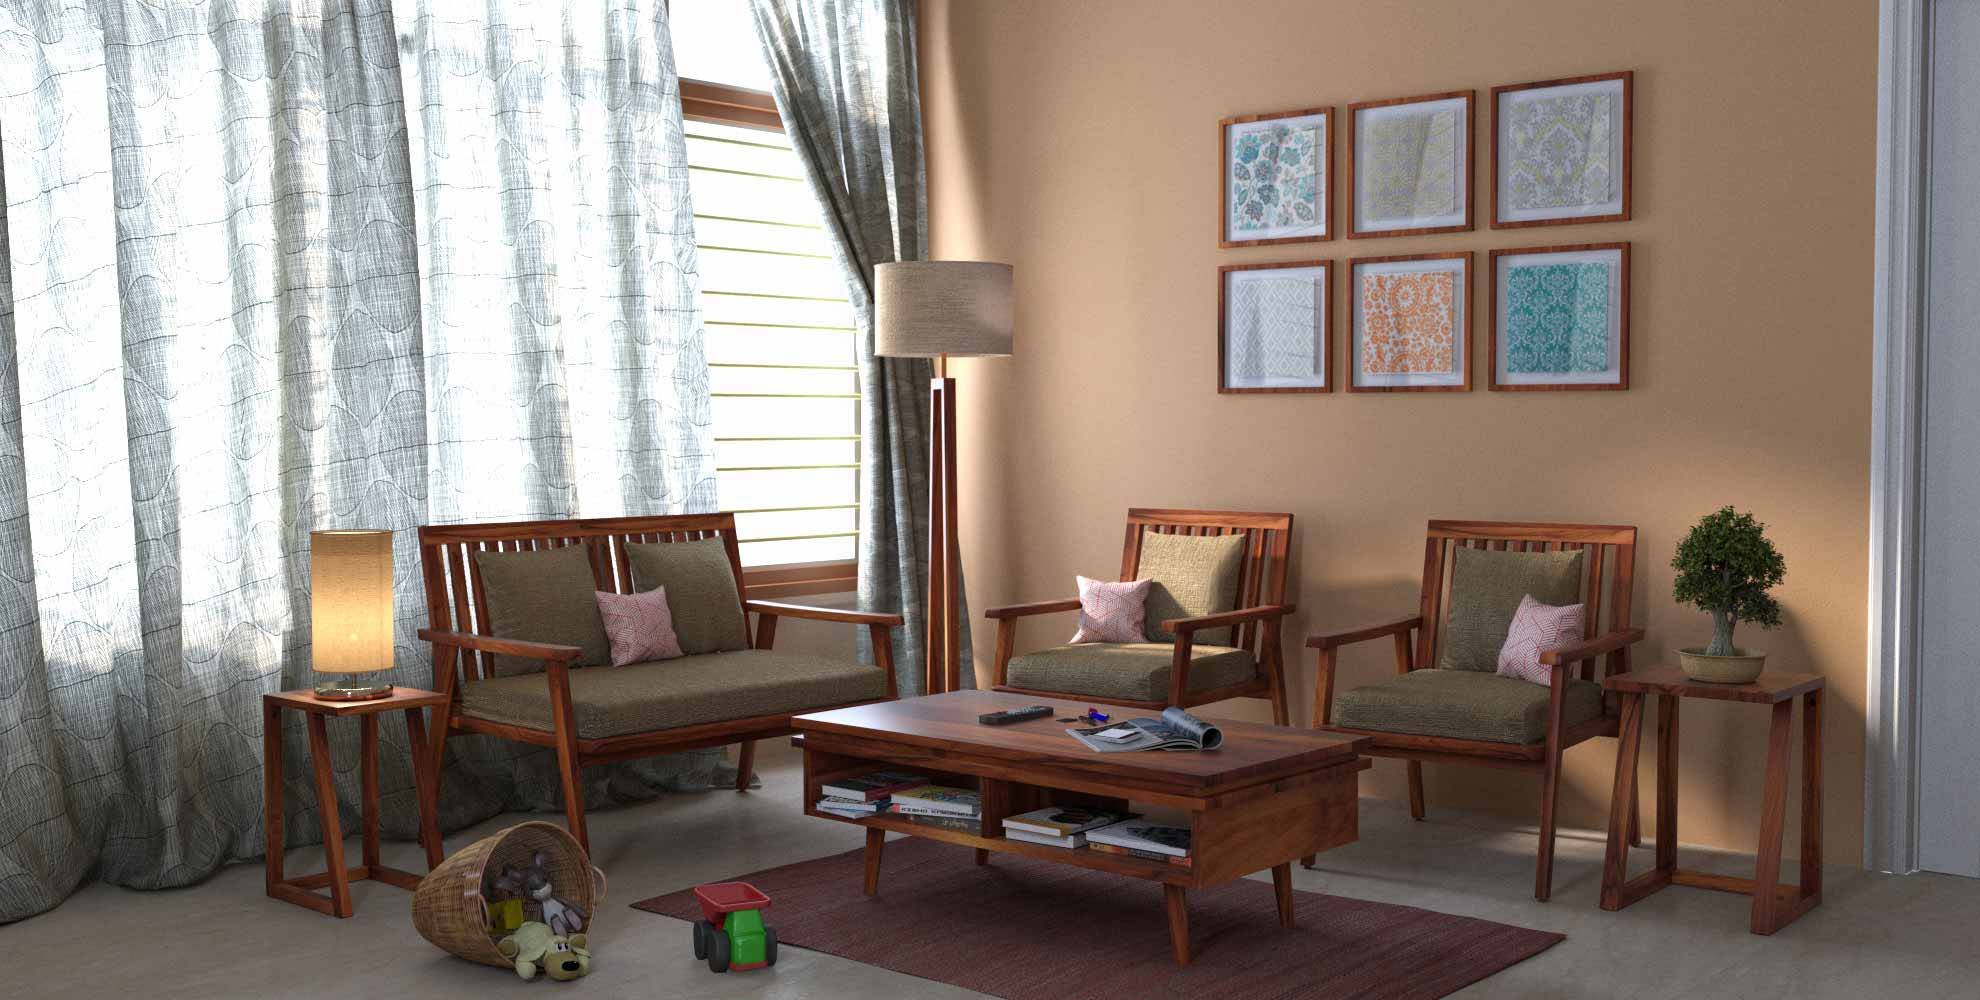 Interior design for home interior designers bangalore - House interior design pictures living room ...